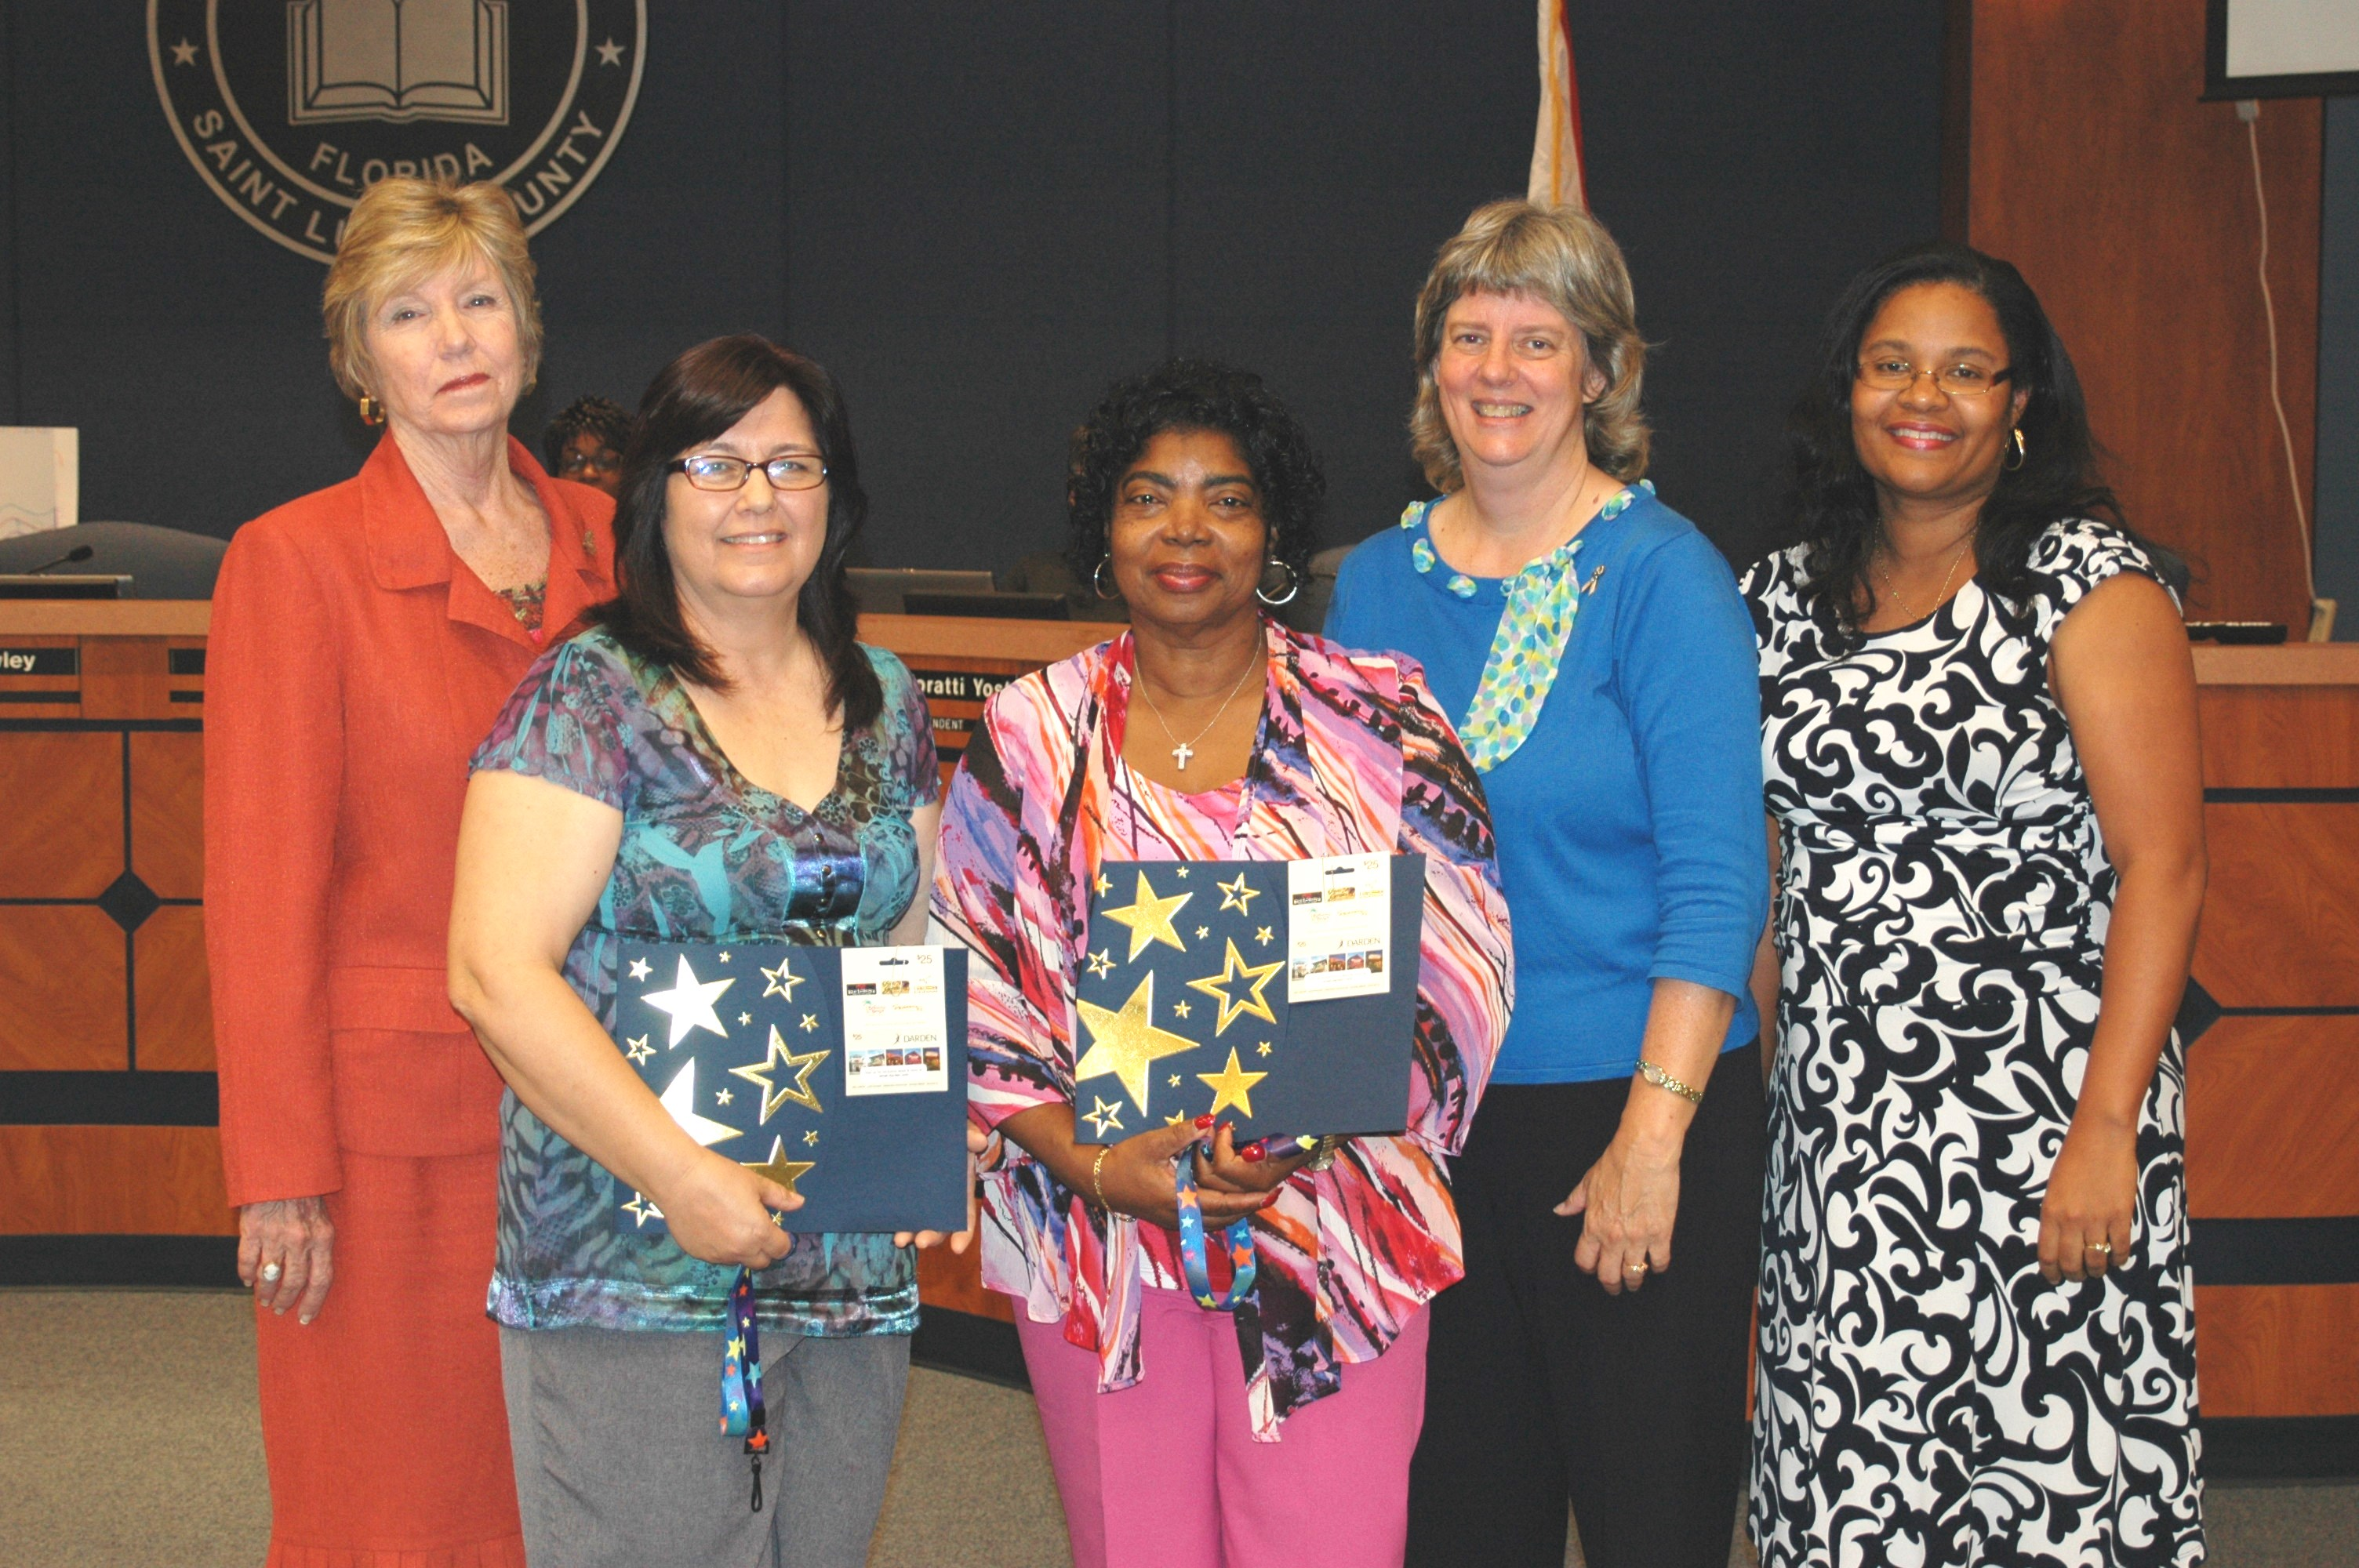 Employees honored at school board meeting